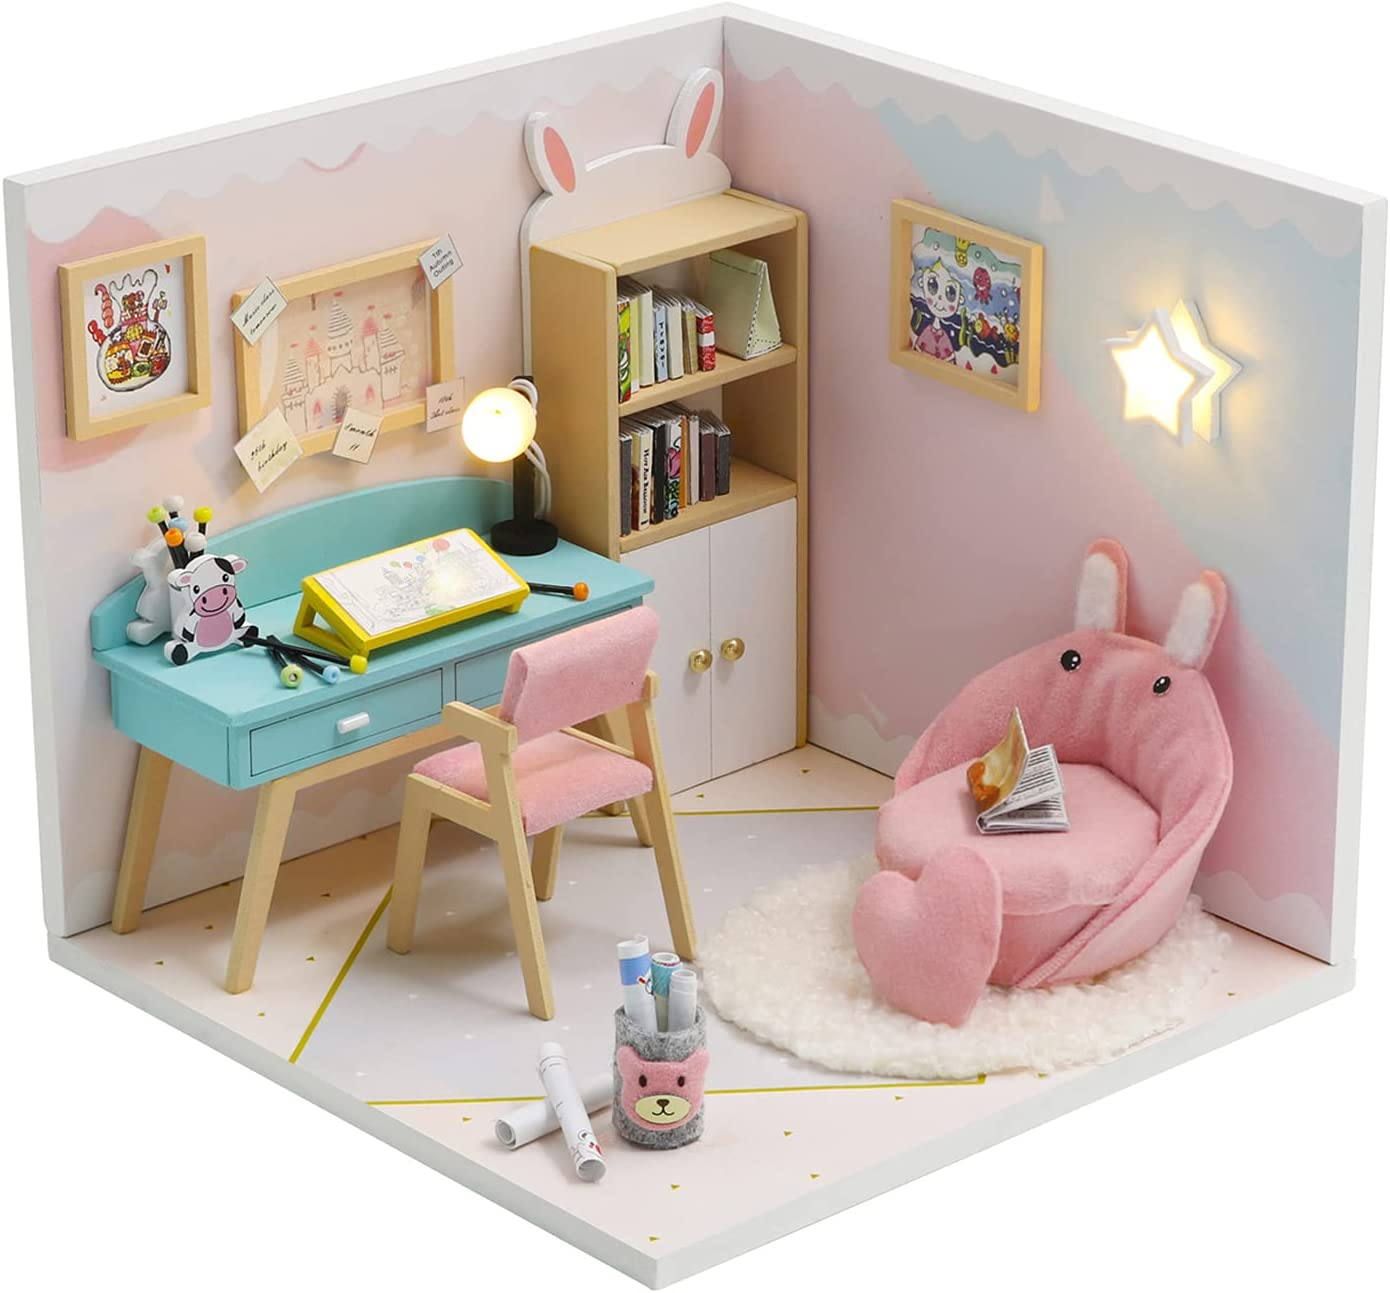 HETOMI DIY Dollhouse Import Quantity limited Miniature Kit Furniture Mini with Wooden R